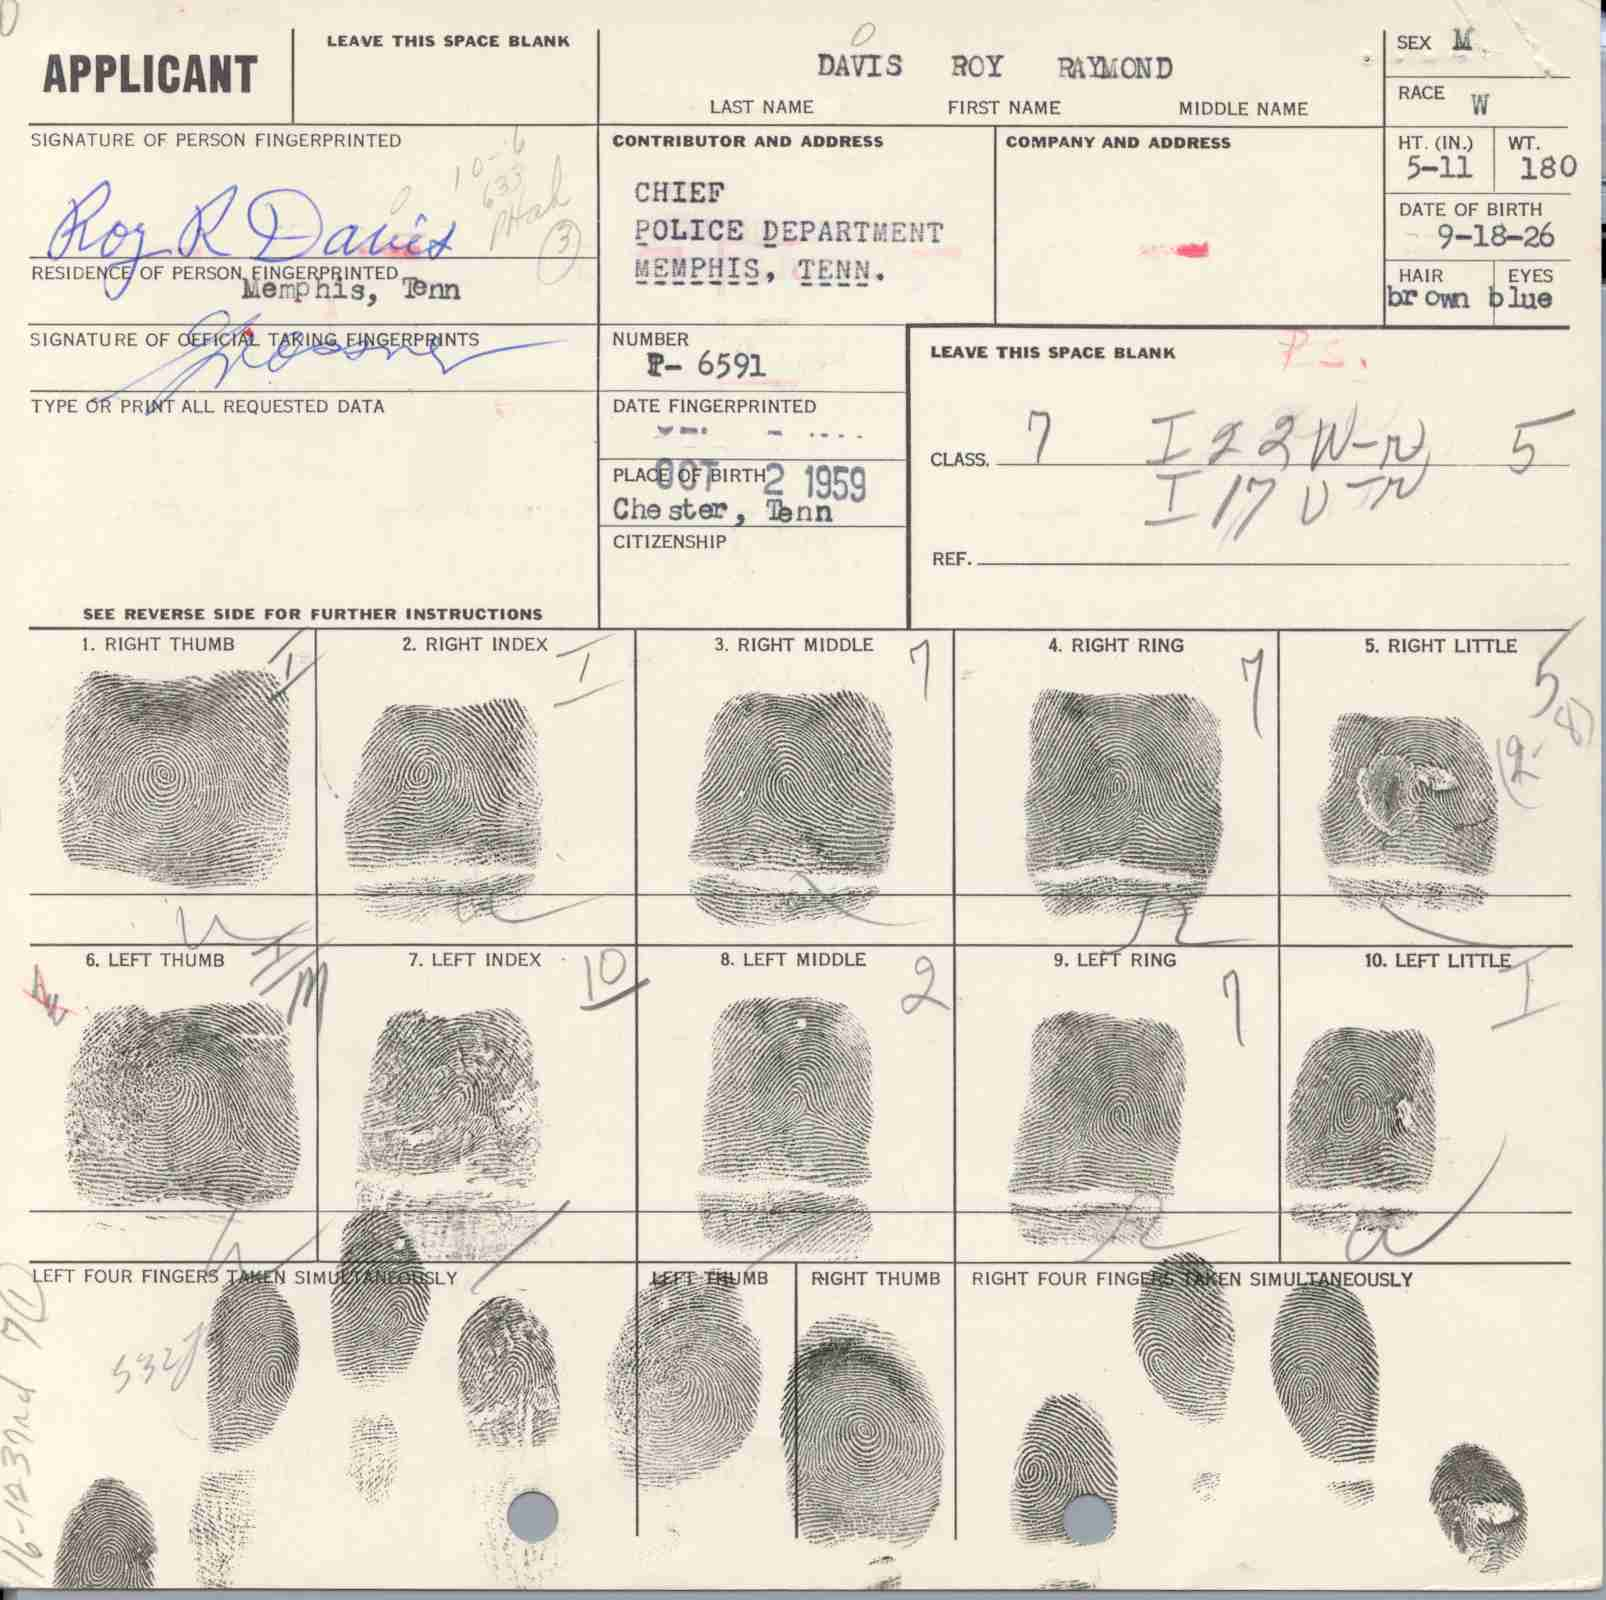 roy raymond davis fingerprint card.jpg